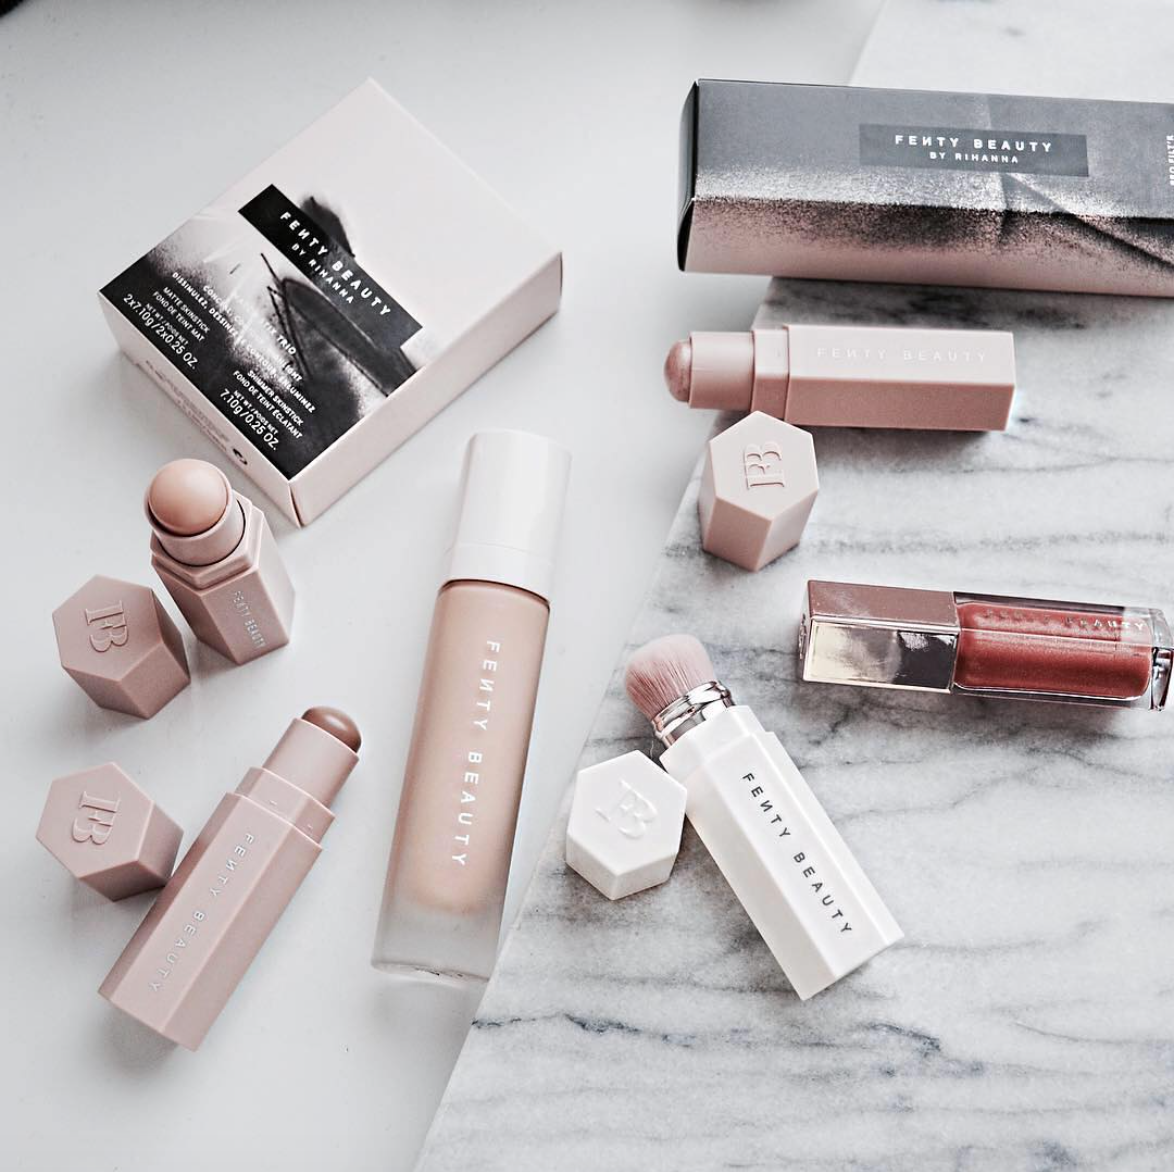 This Leak May Reveal The Next Fenty Beauty Launch